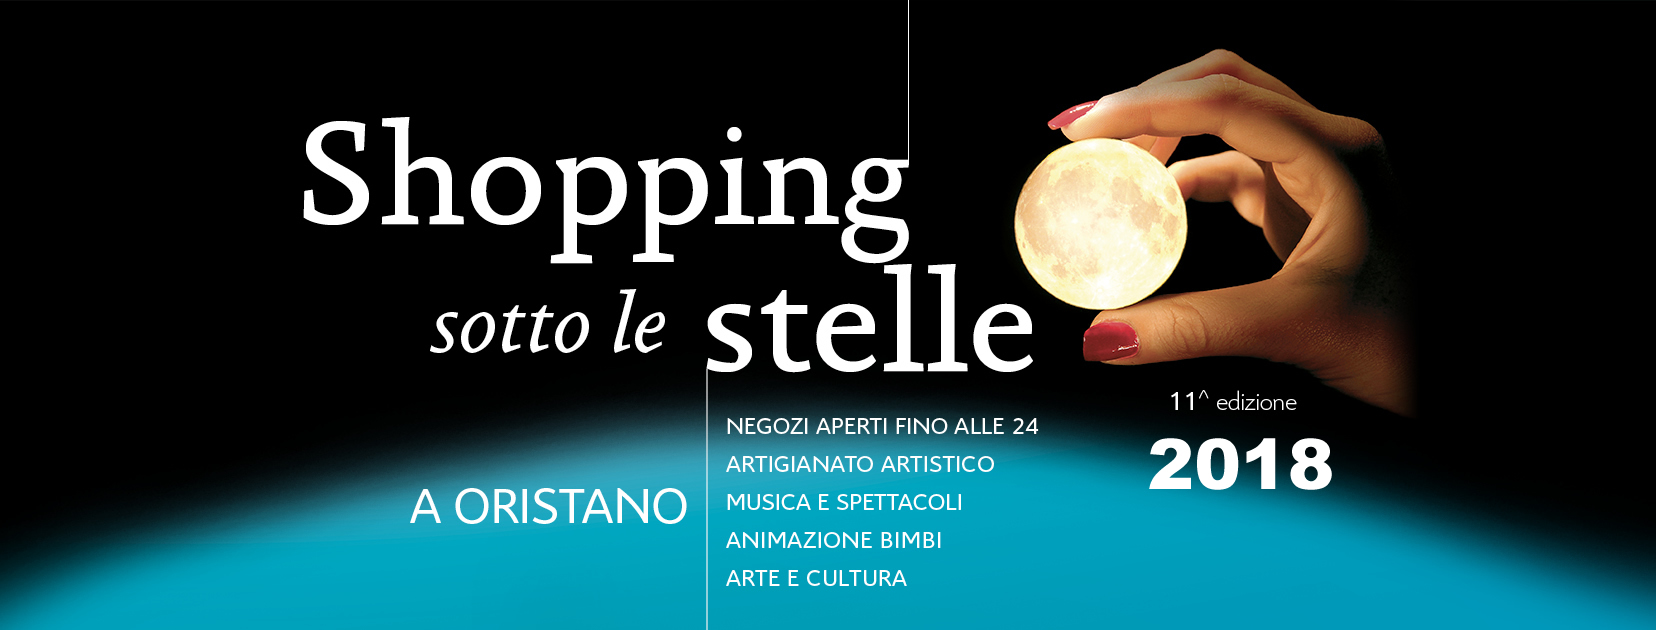 Shooping sotto le stelle 2018 Oristano